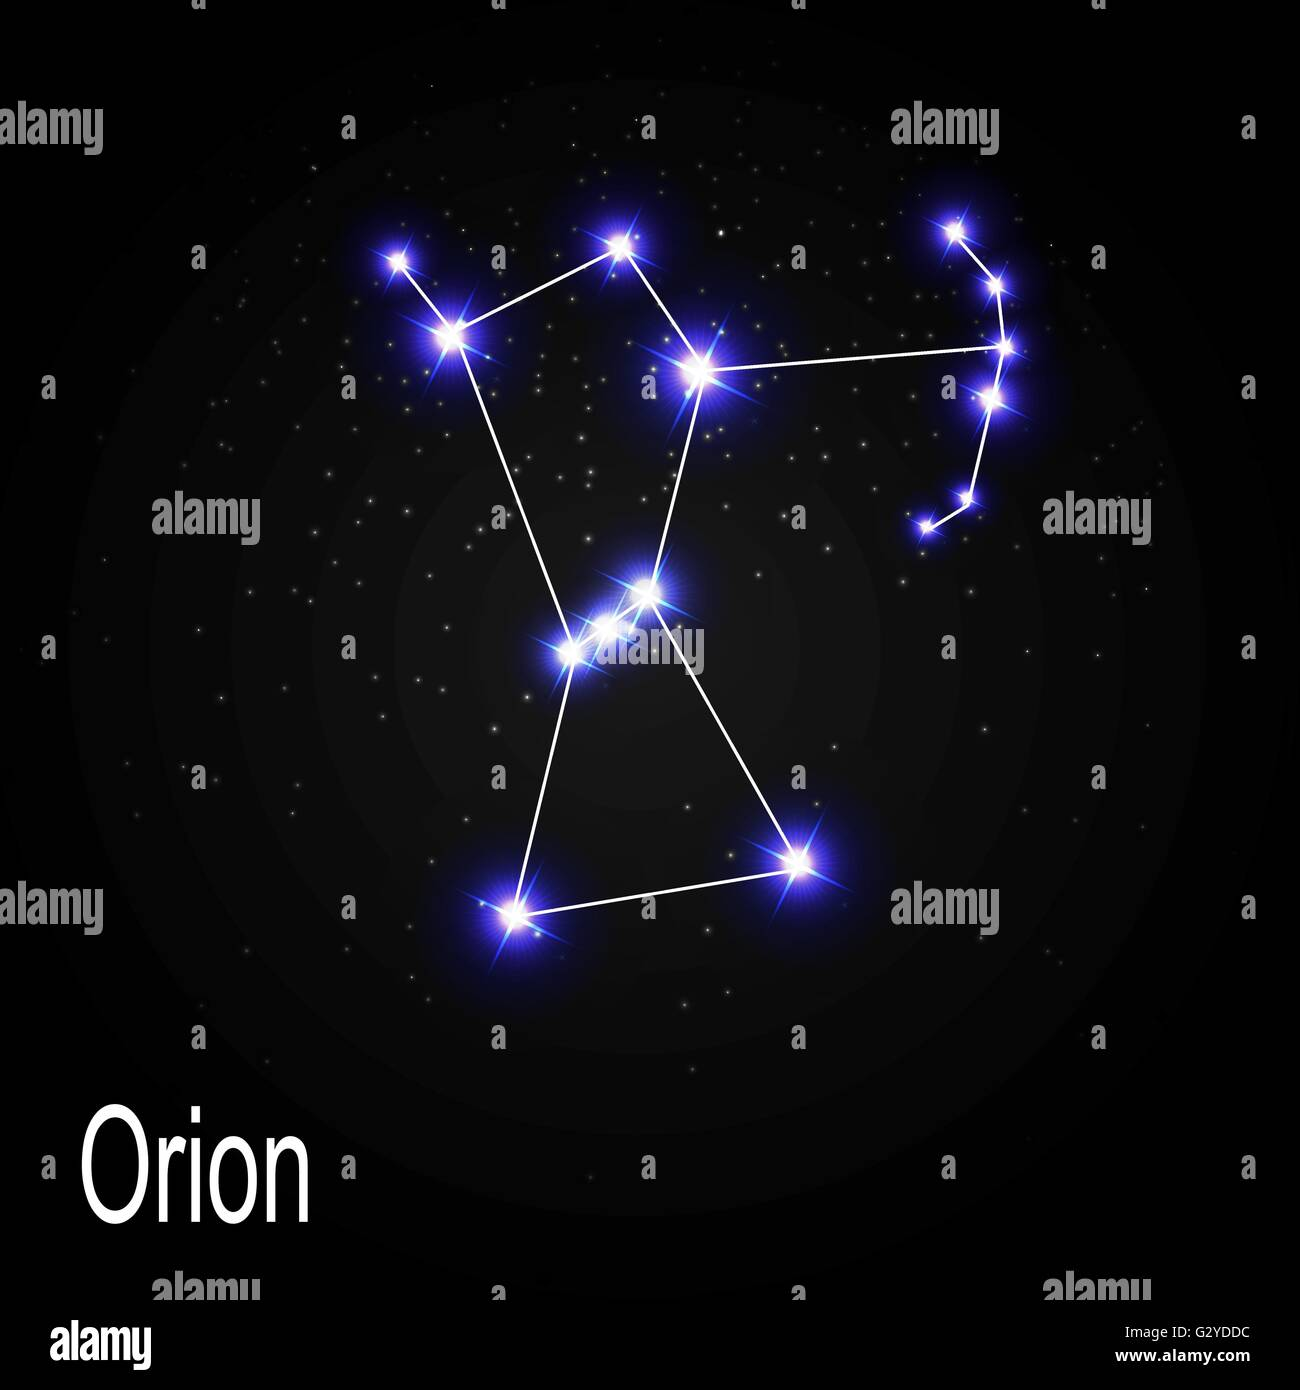 What Is My Up Orion Constellation With Beautiful Bright Stars On The